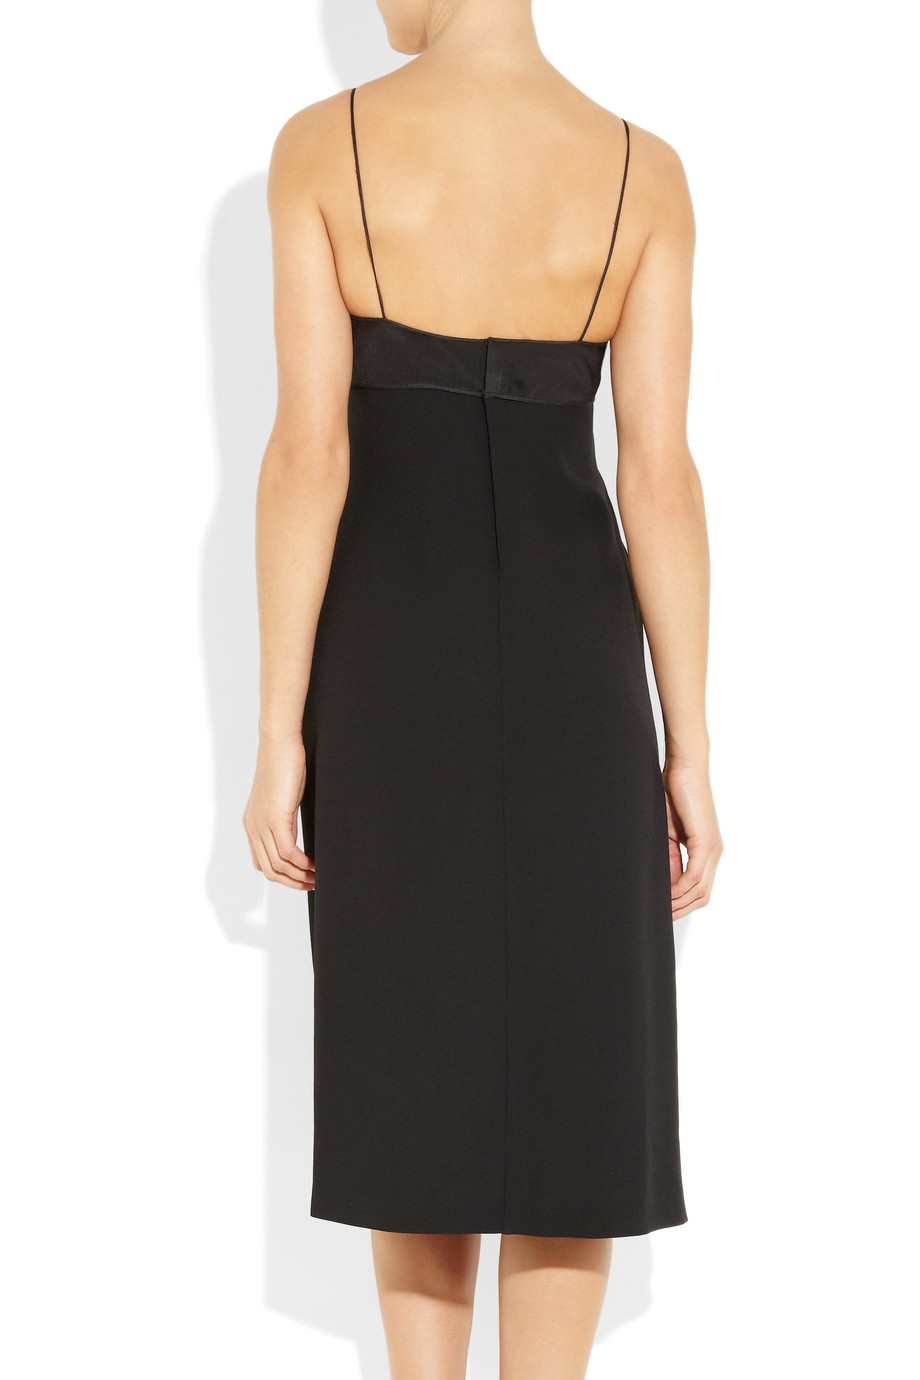 calvin klein koko stretchcrepe slip dress in black lyst. Black Bedroom Furniture Sets. Home Design Ideas